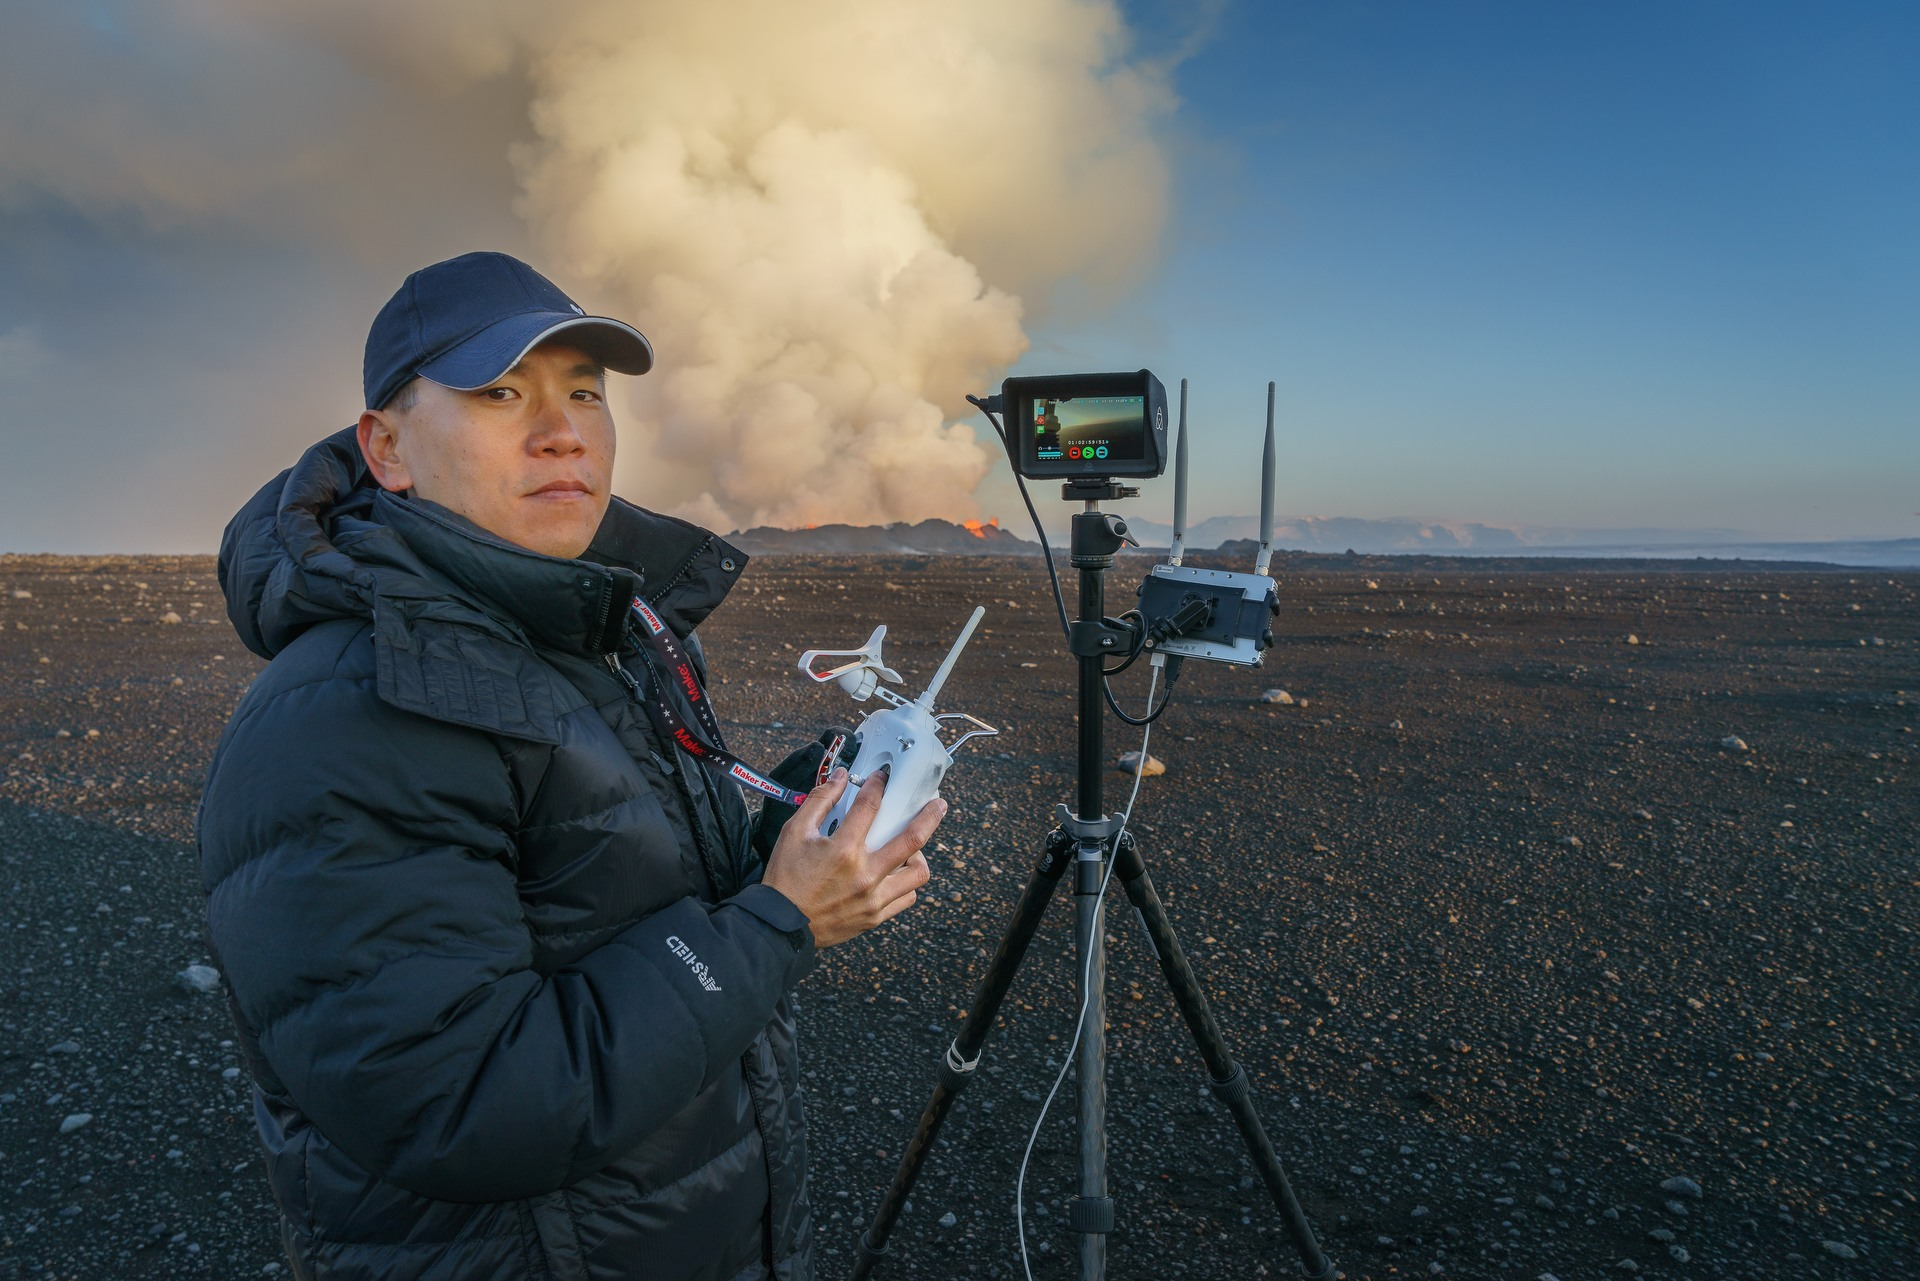 eric-cheng-bio-image-1-credit-Ragnar-Sigurdsson A Sit-Down With Drone Photographer Eric Cheng: Five Industry Insights